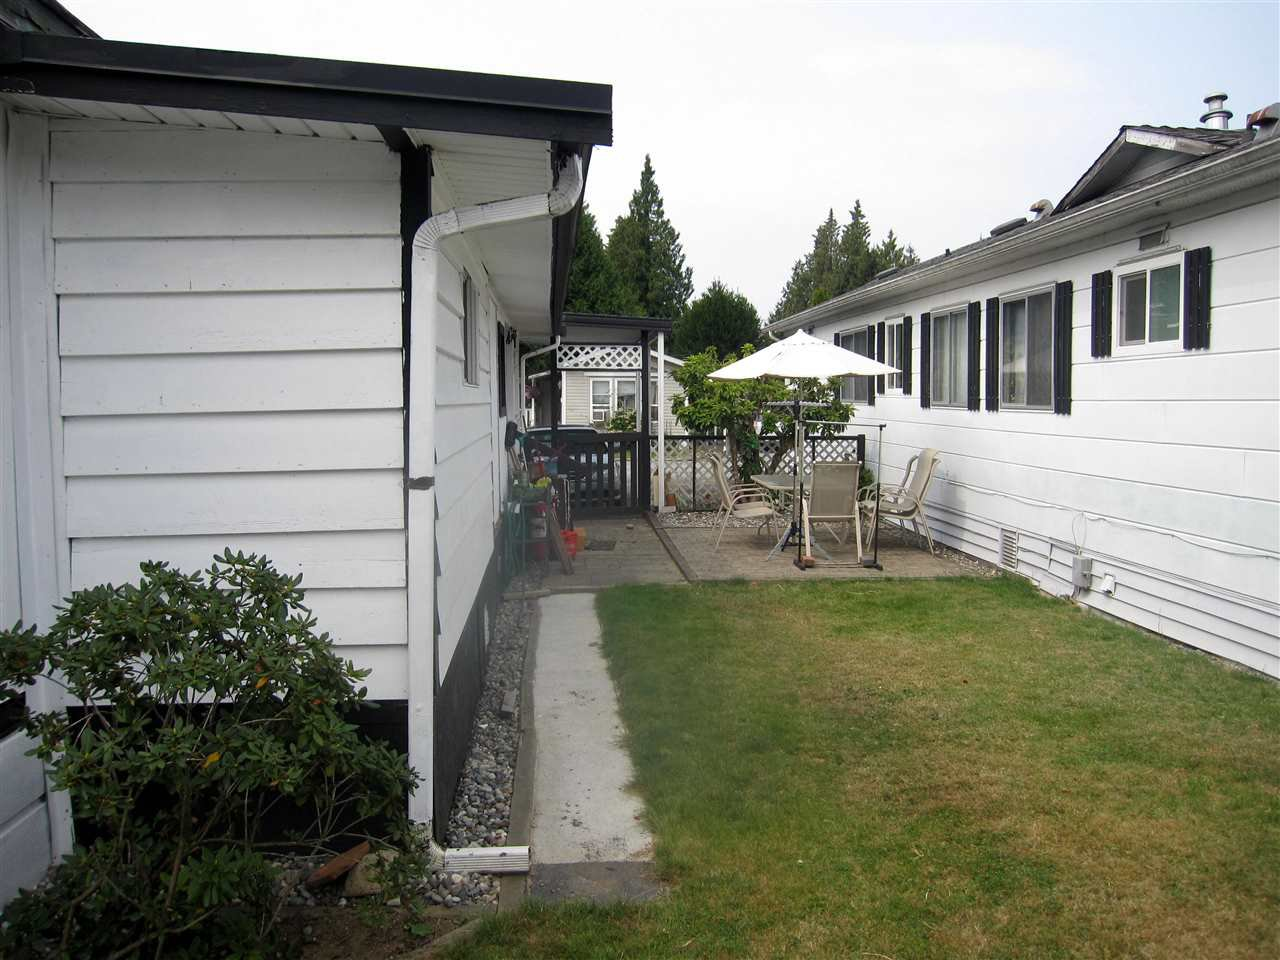 Photo 11: Photos: 24 21163 LOUGHEED Highway in Maple Ridge: Southwest Maple Ridge Manufactured Home for sale : MLS®# R2297032